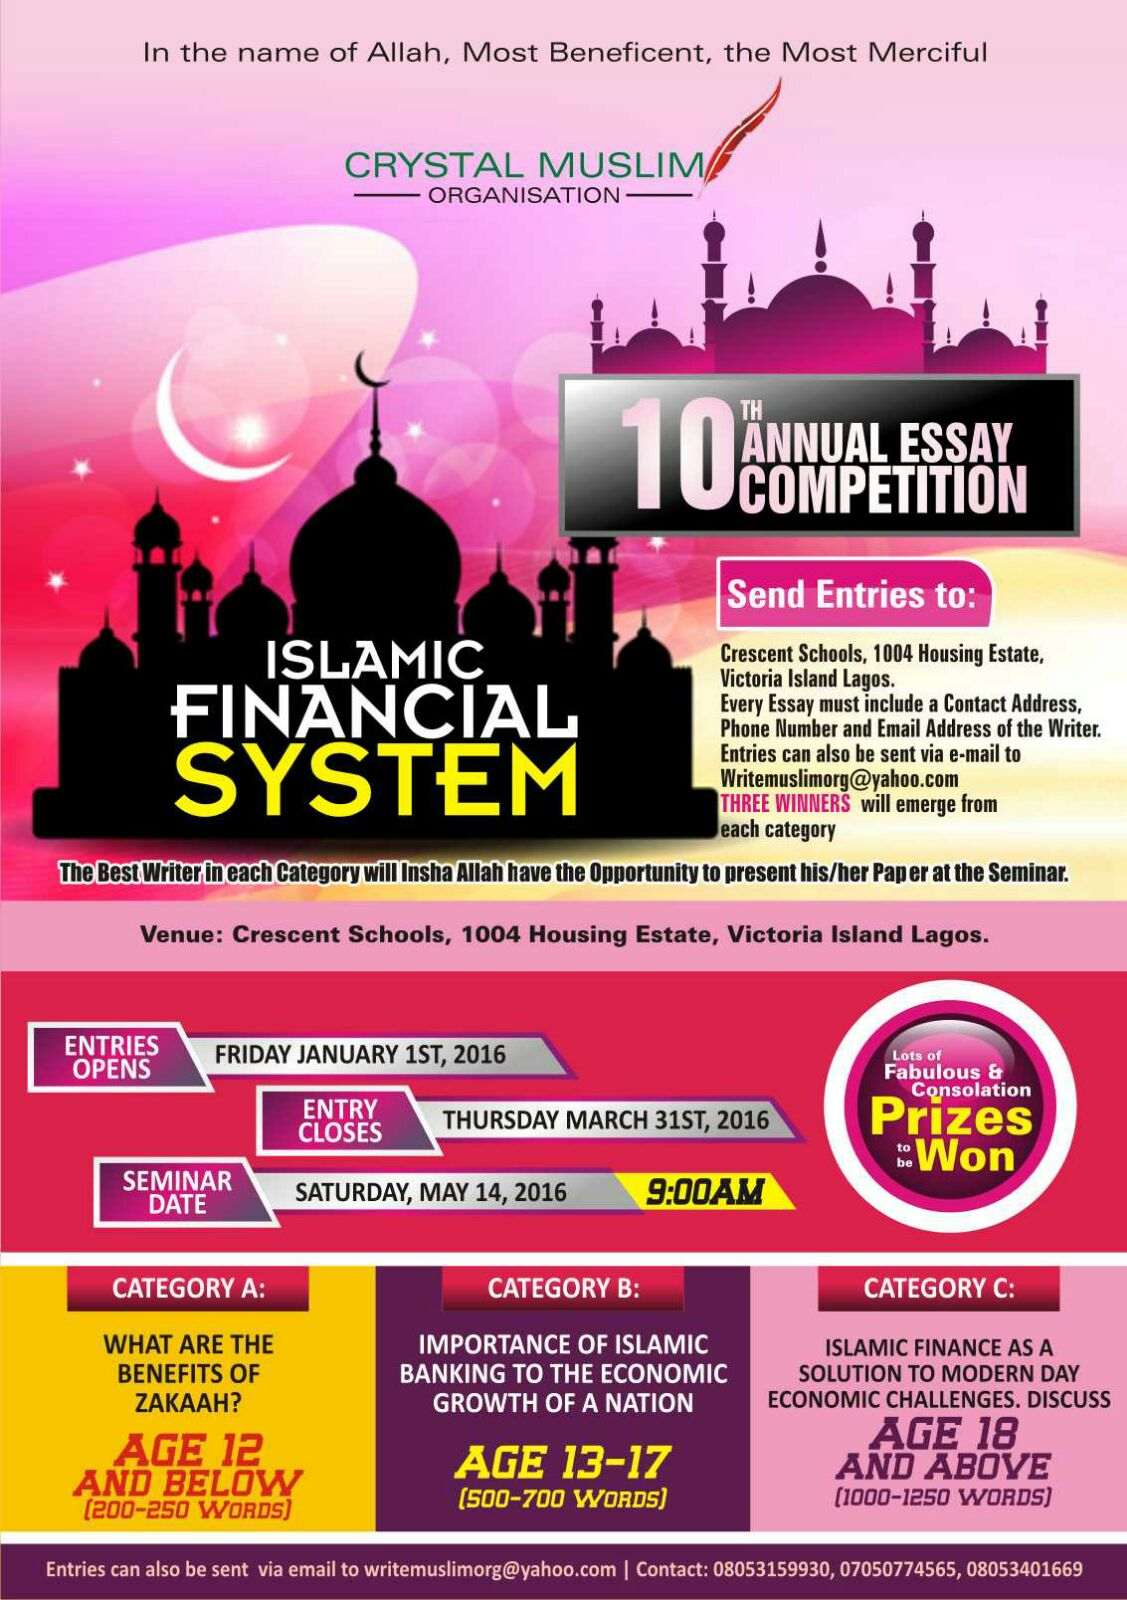 islam creed 10th cmo islamic essay competition islamic financial entry opens 1st 2016 and closes 31st 2016 9 00am all entries should be sent to writemuslimorg yahoo com and must include the phone number